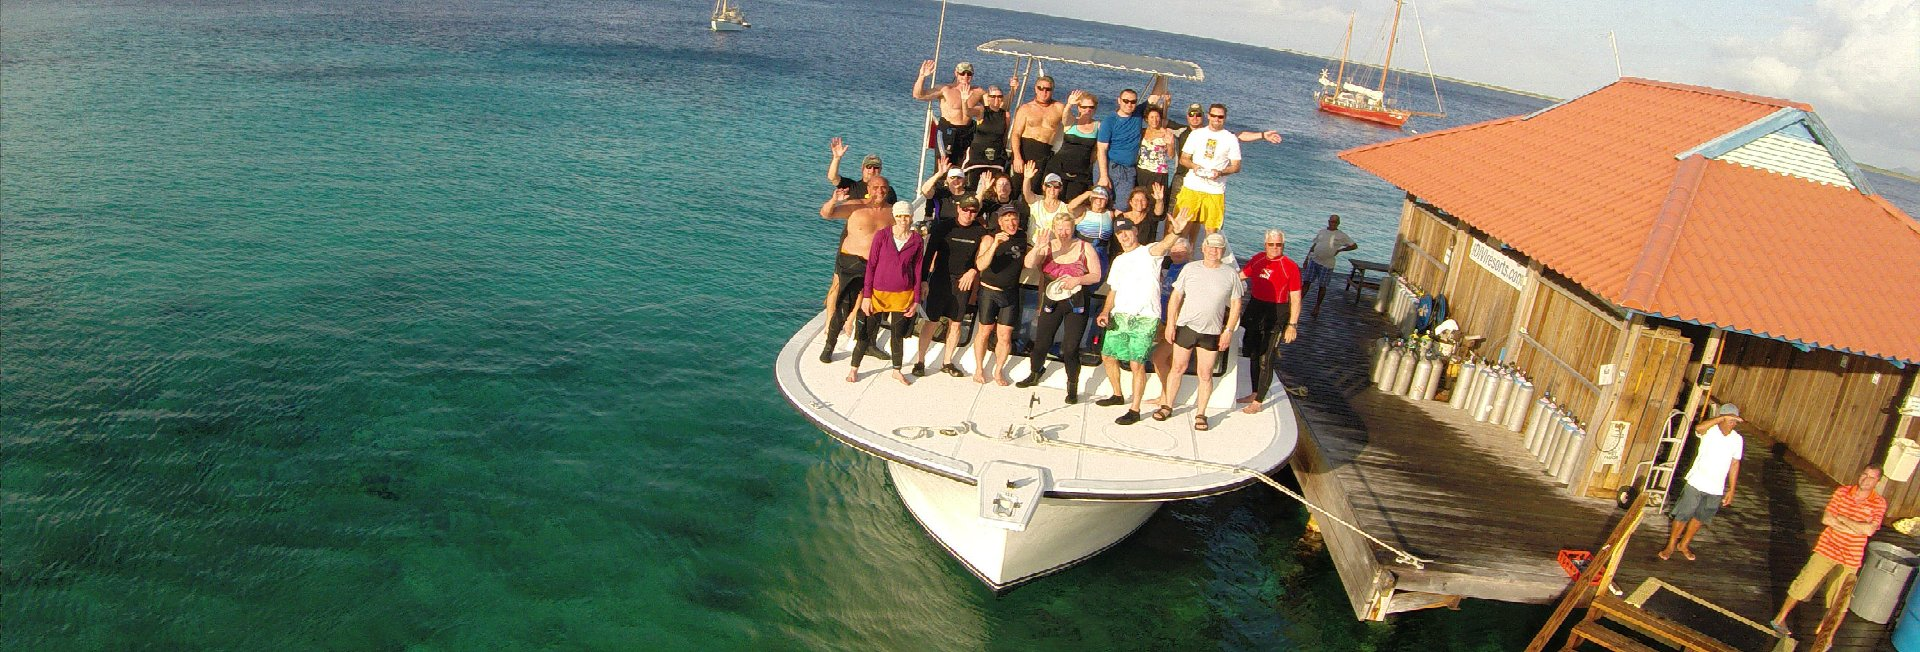 One world dive travel denver colorado offers padi group one world dive travel denver colorado offers padi group scuba lessons private scuba lessons snorkeling classes travel agency guided adventure xflitez Choice Image